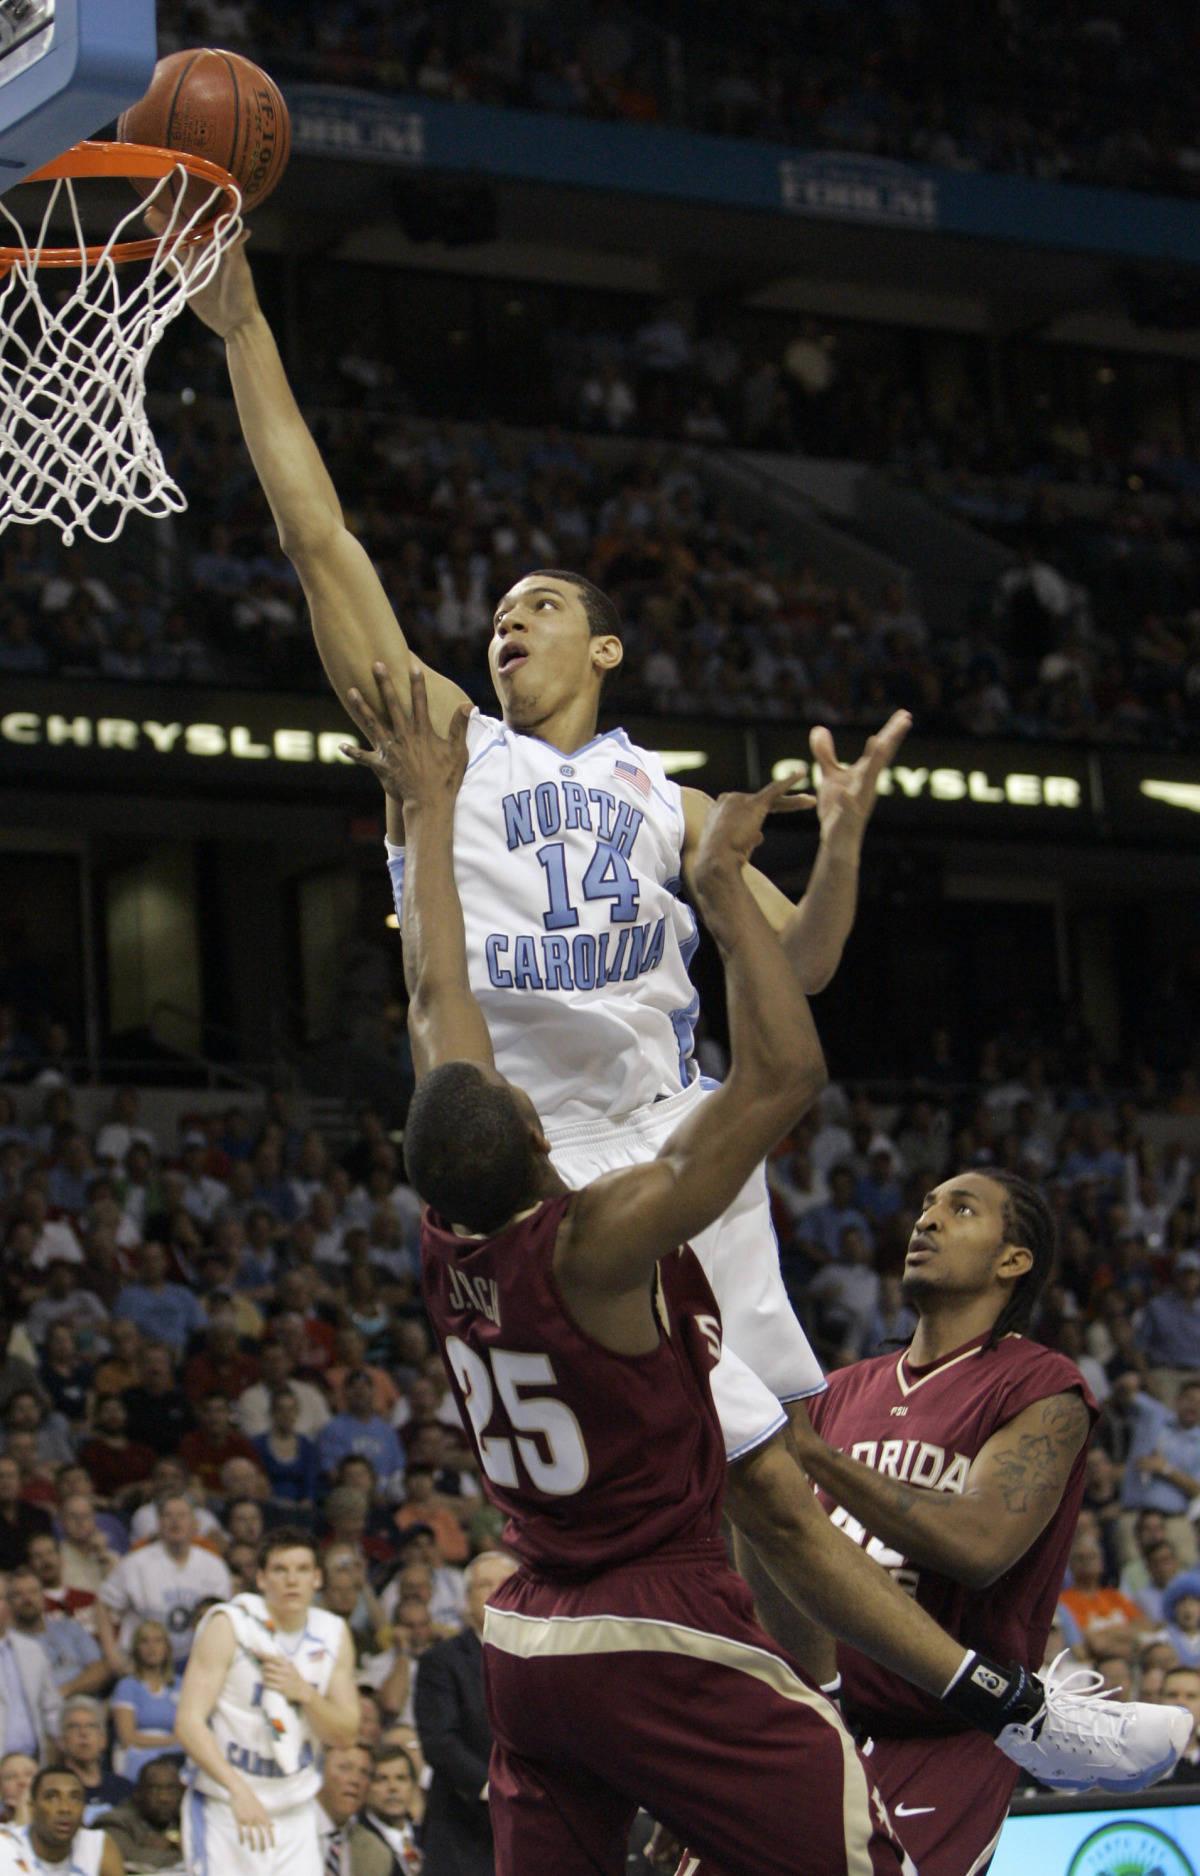 North Carolina's Danny Green (14) scores over Florida State's Jason Rich (24) and Ryan Rich (42) during a second round game of the Men's Atlantic Coast Conference basketball tournament in Tampa, Fla., Friday, March 9, 2007. North Carolina beat Florida State 73-58. (AP Photo/John Raoux)